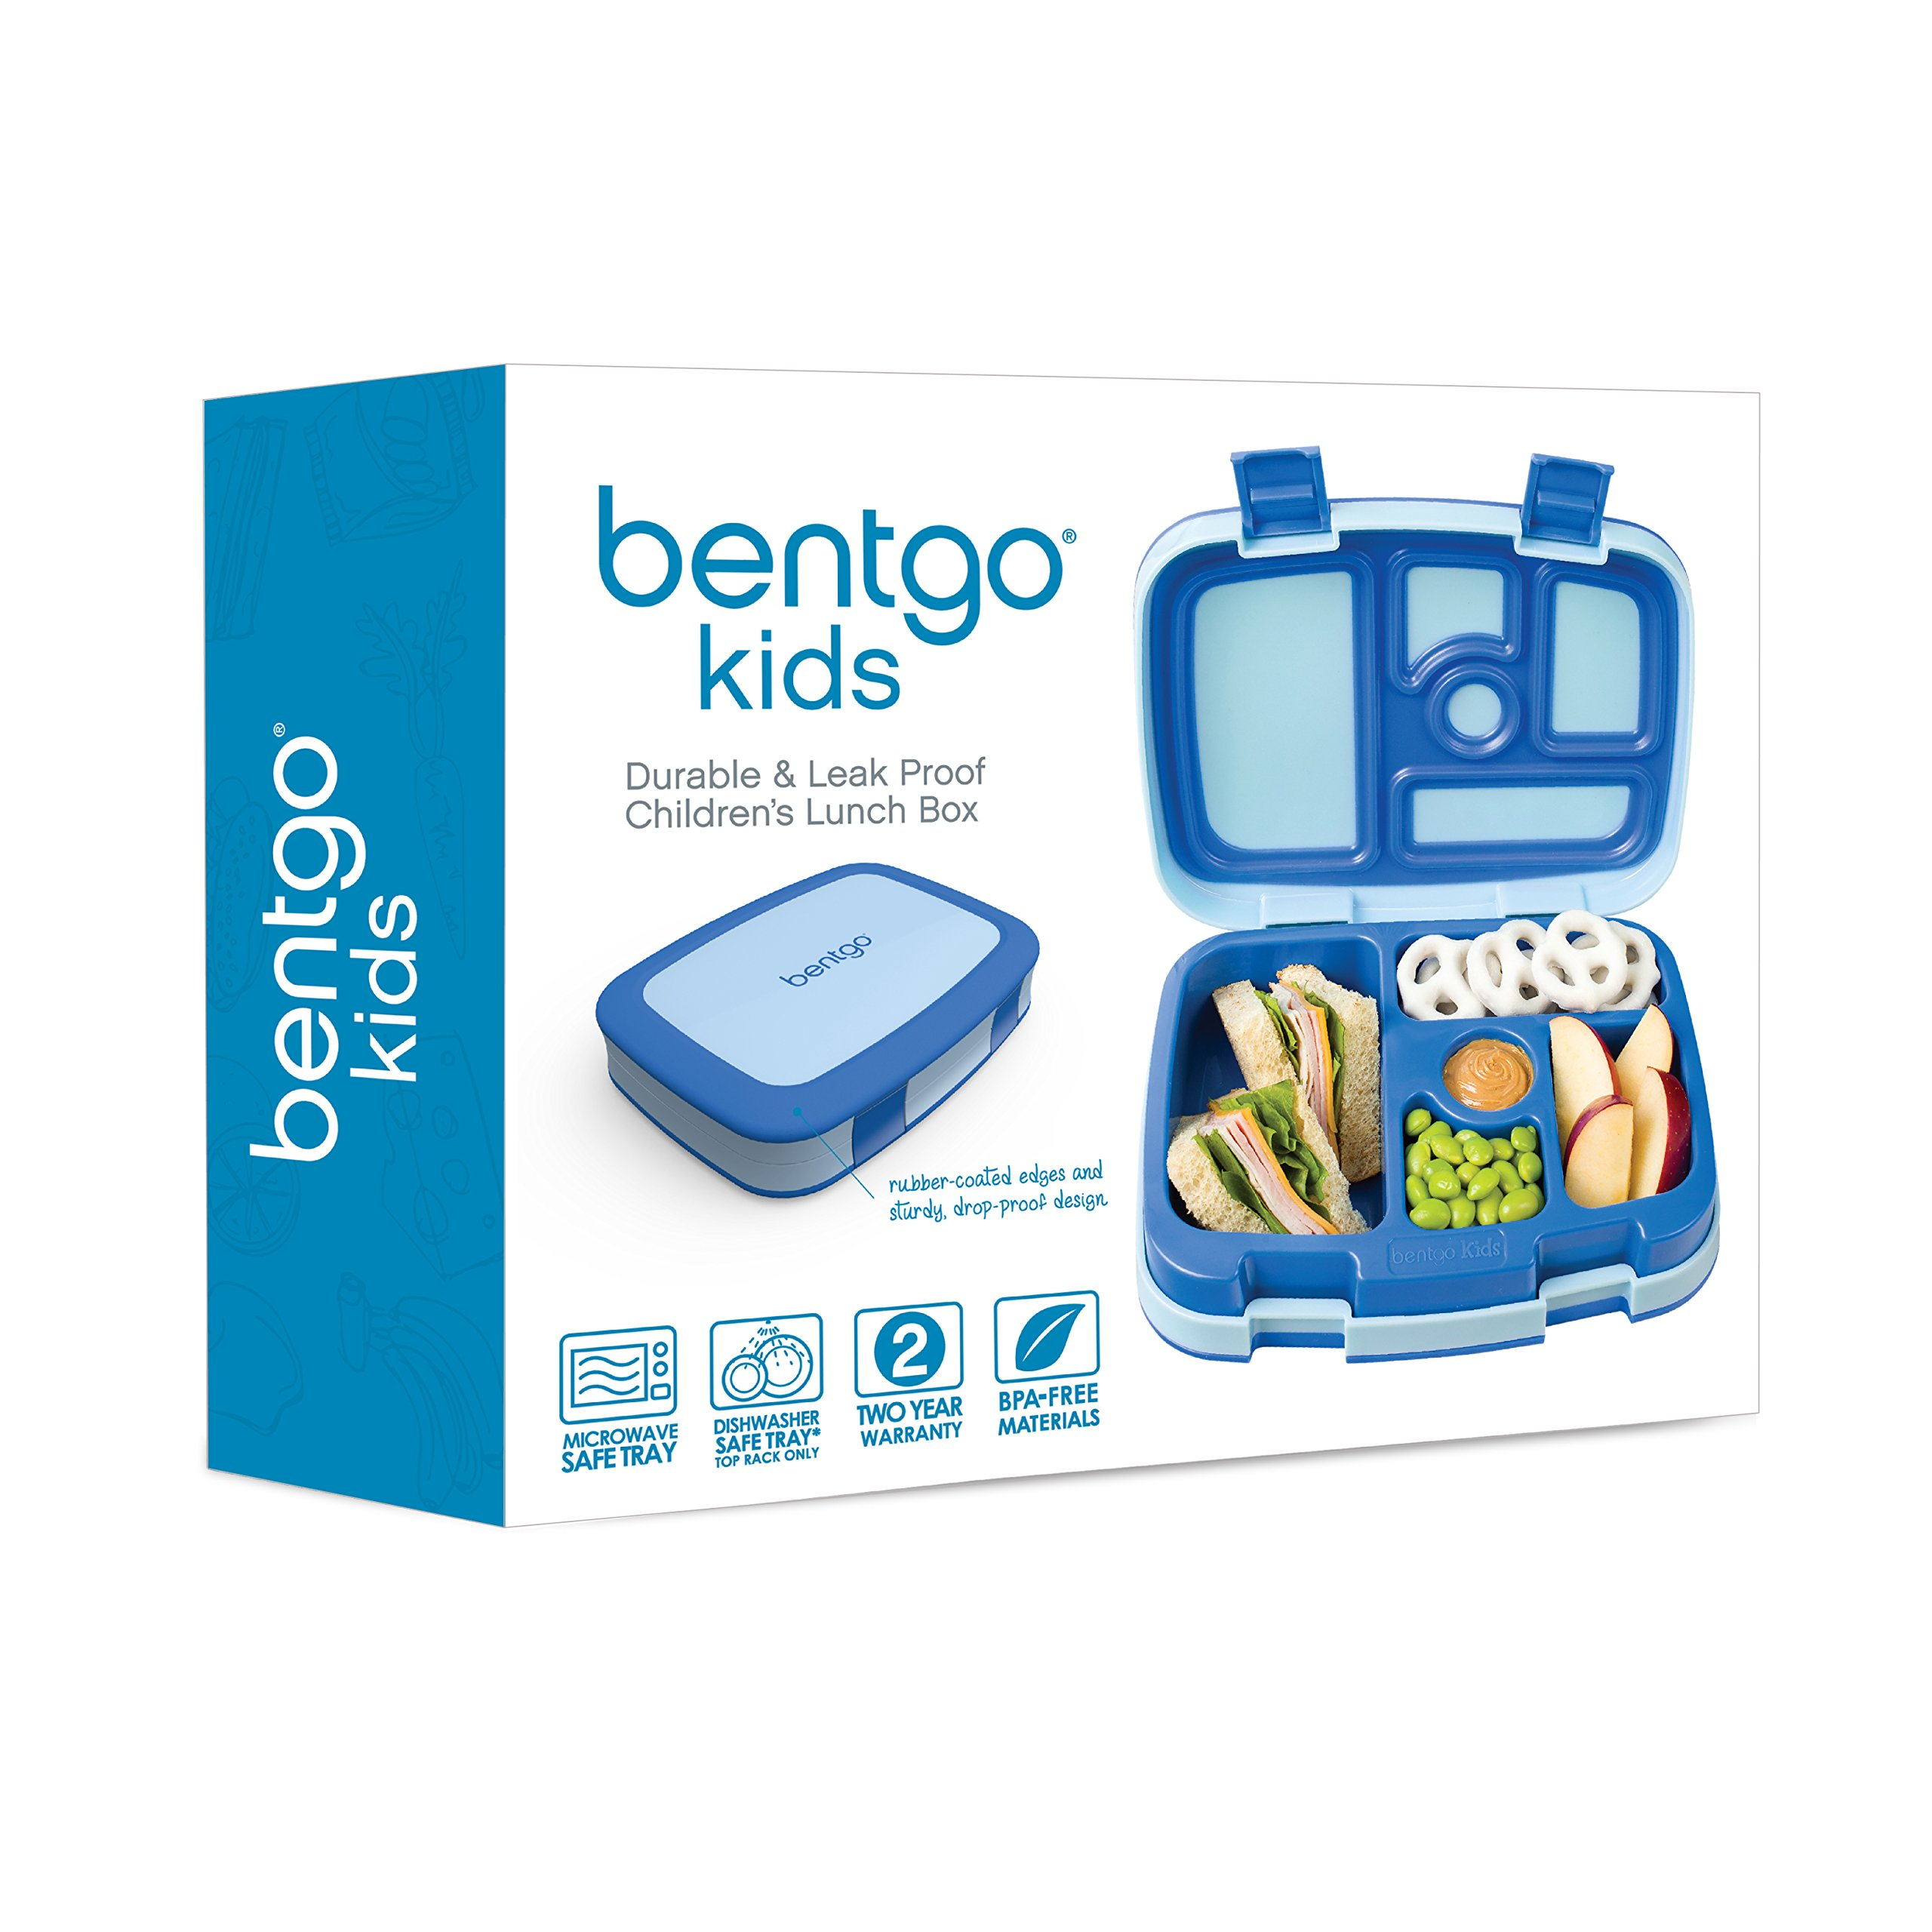 Bentgo Kids Childrens Lunch Box - Bento-Styled Lunch Solution Offers Durable, Leak-Proof, On-the-Go Meal and Snack Packing by Bentgo (Image #5)